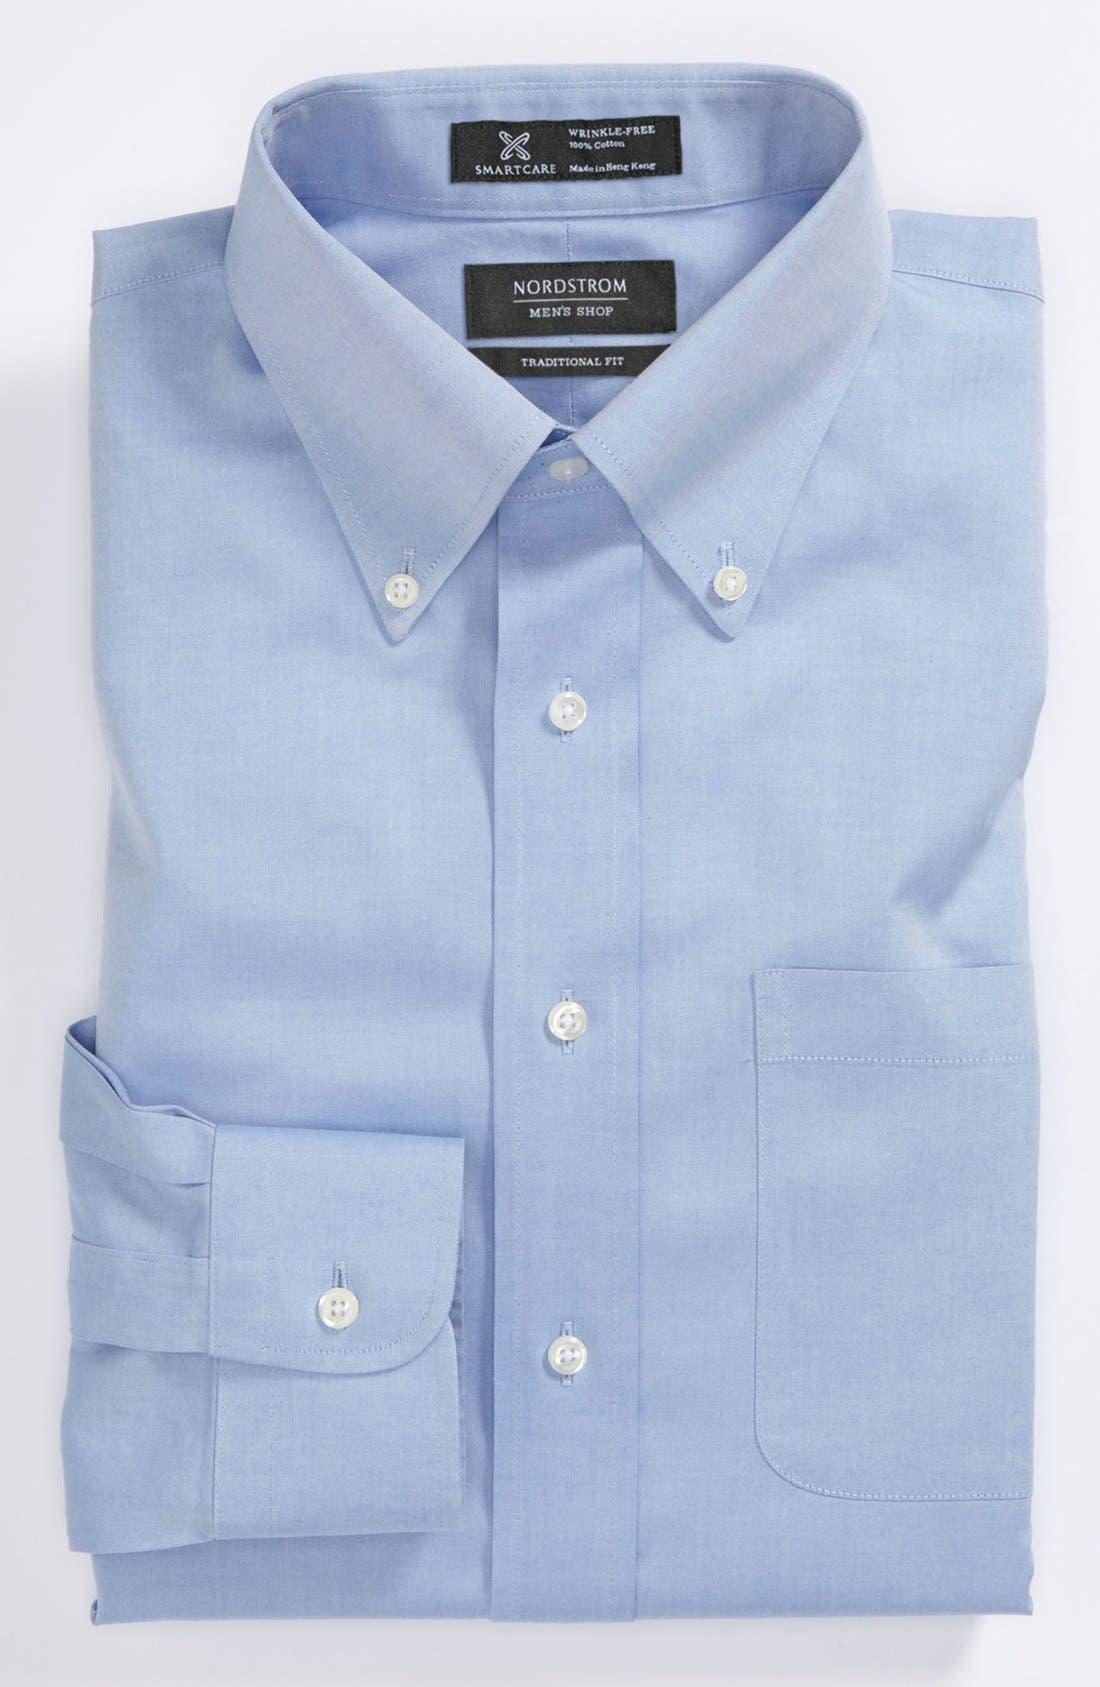 Alternate Image 1 Selected - Nordstrom Men's Shop Smartcare™ Traditional Fit Pinpoint Dress Shirt